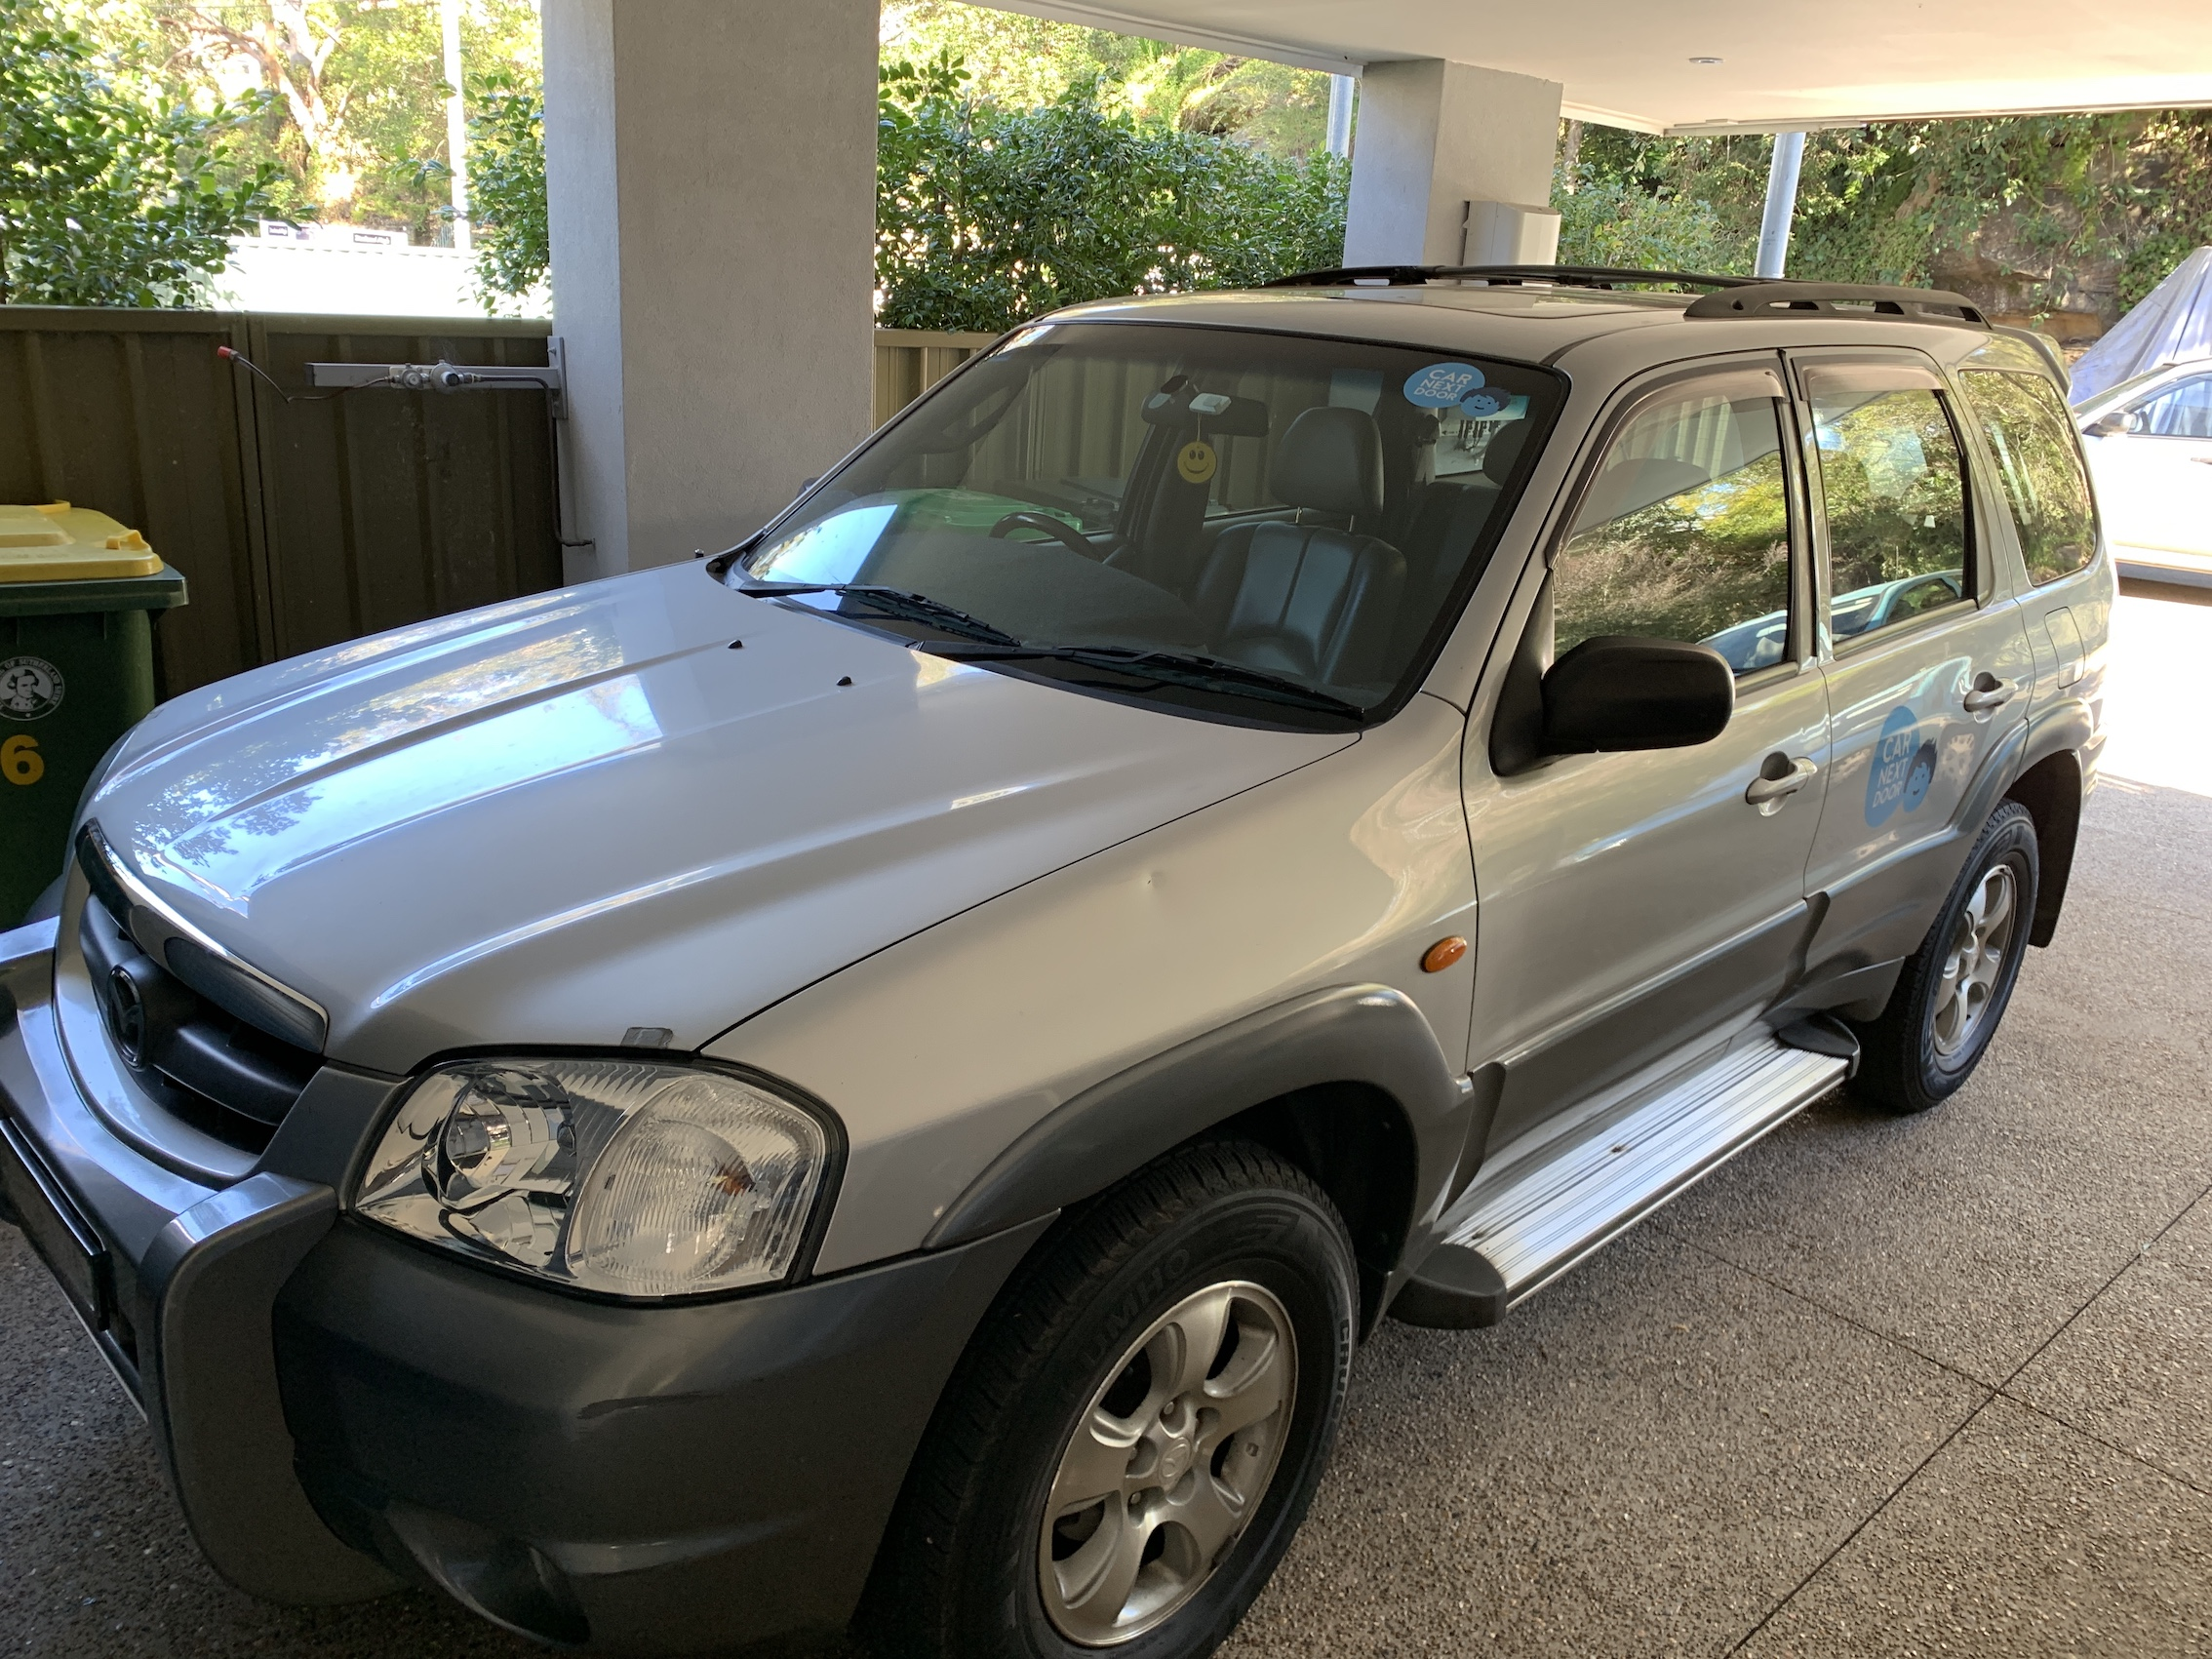 Picture of Spiros' 2002 Mazda Tribute